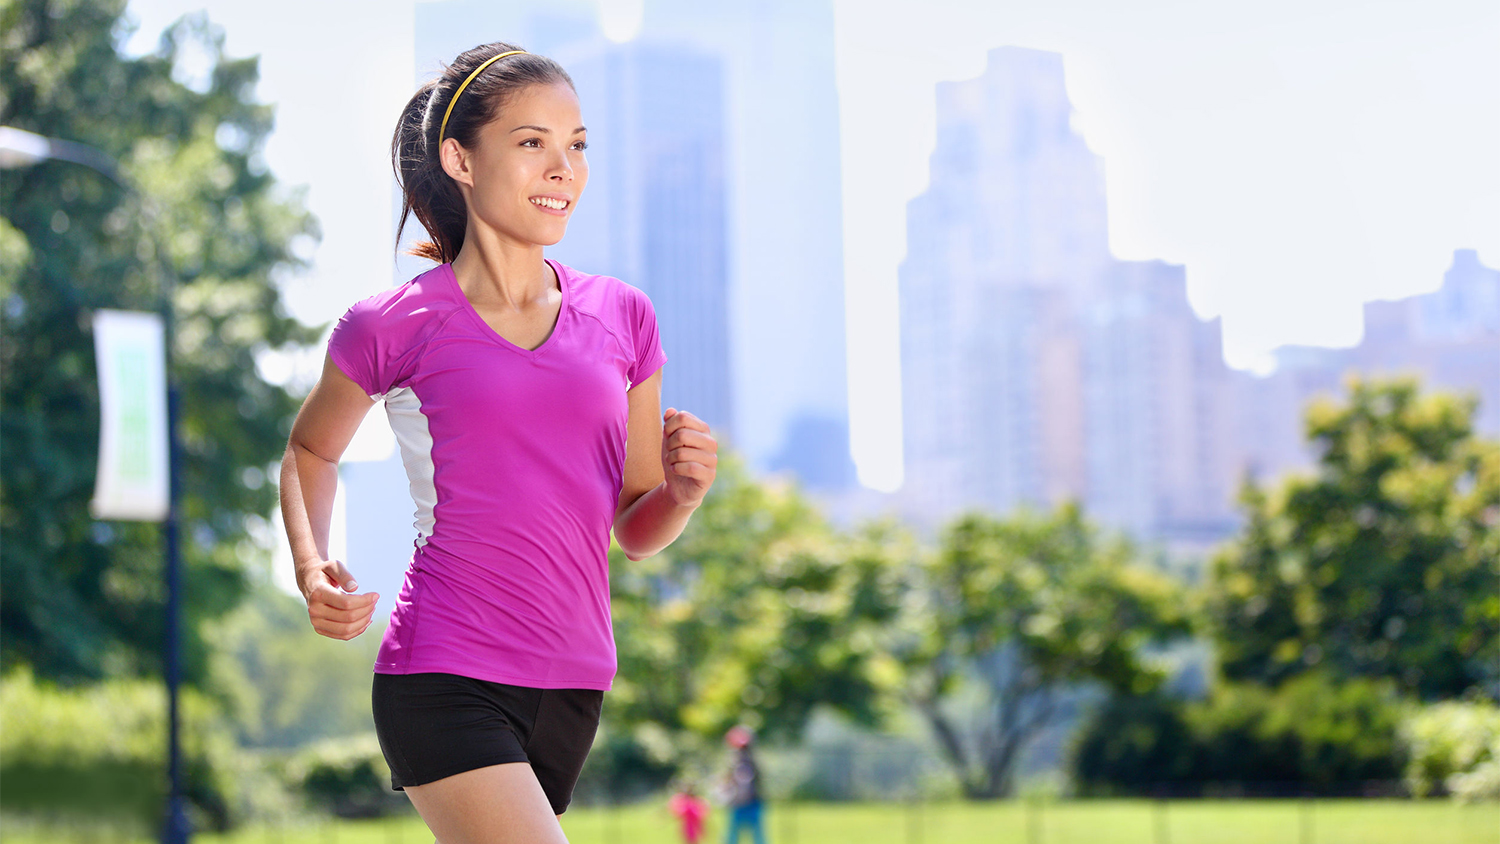 5 Safety Tips for Exercising Outdoors